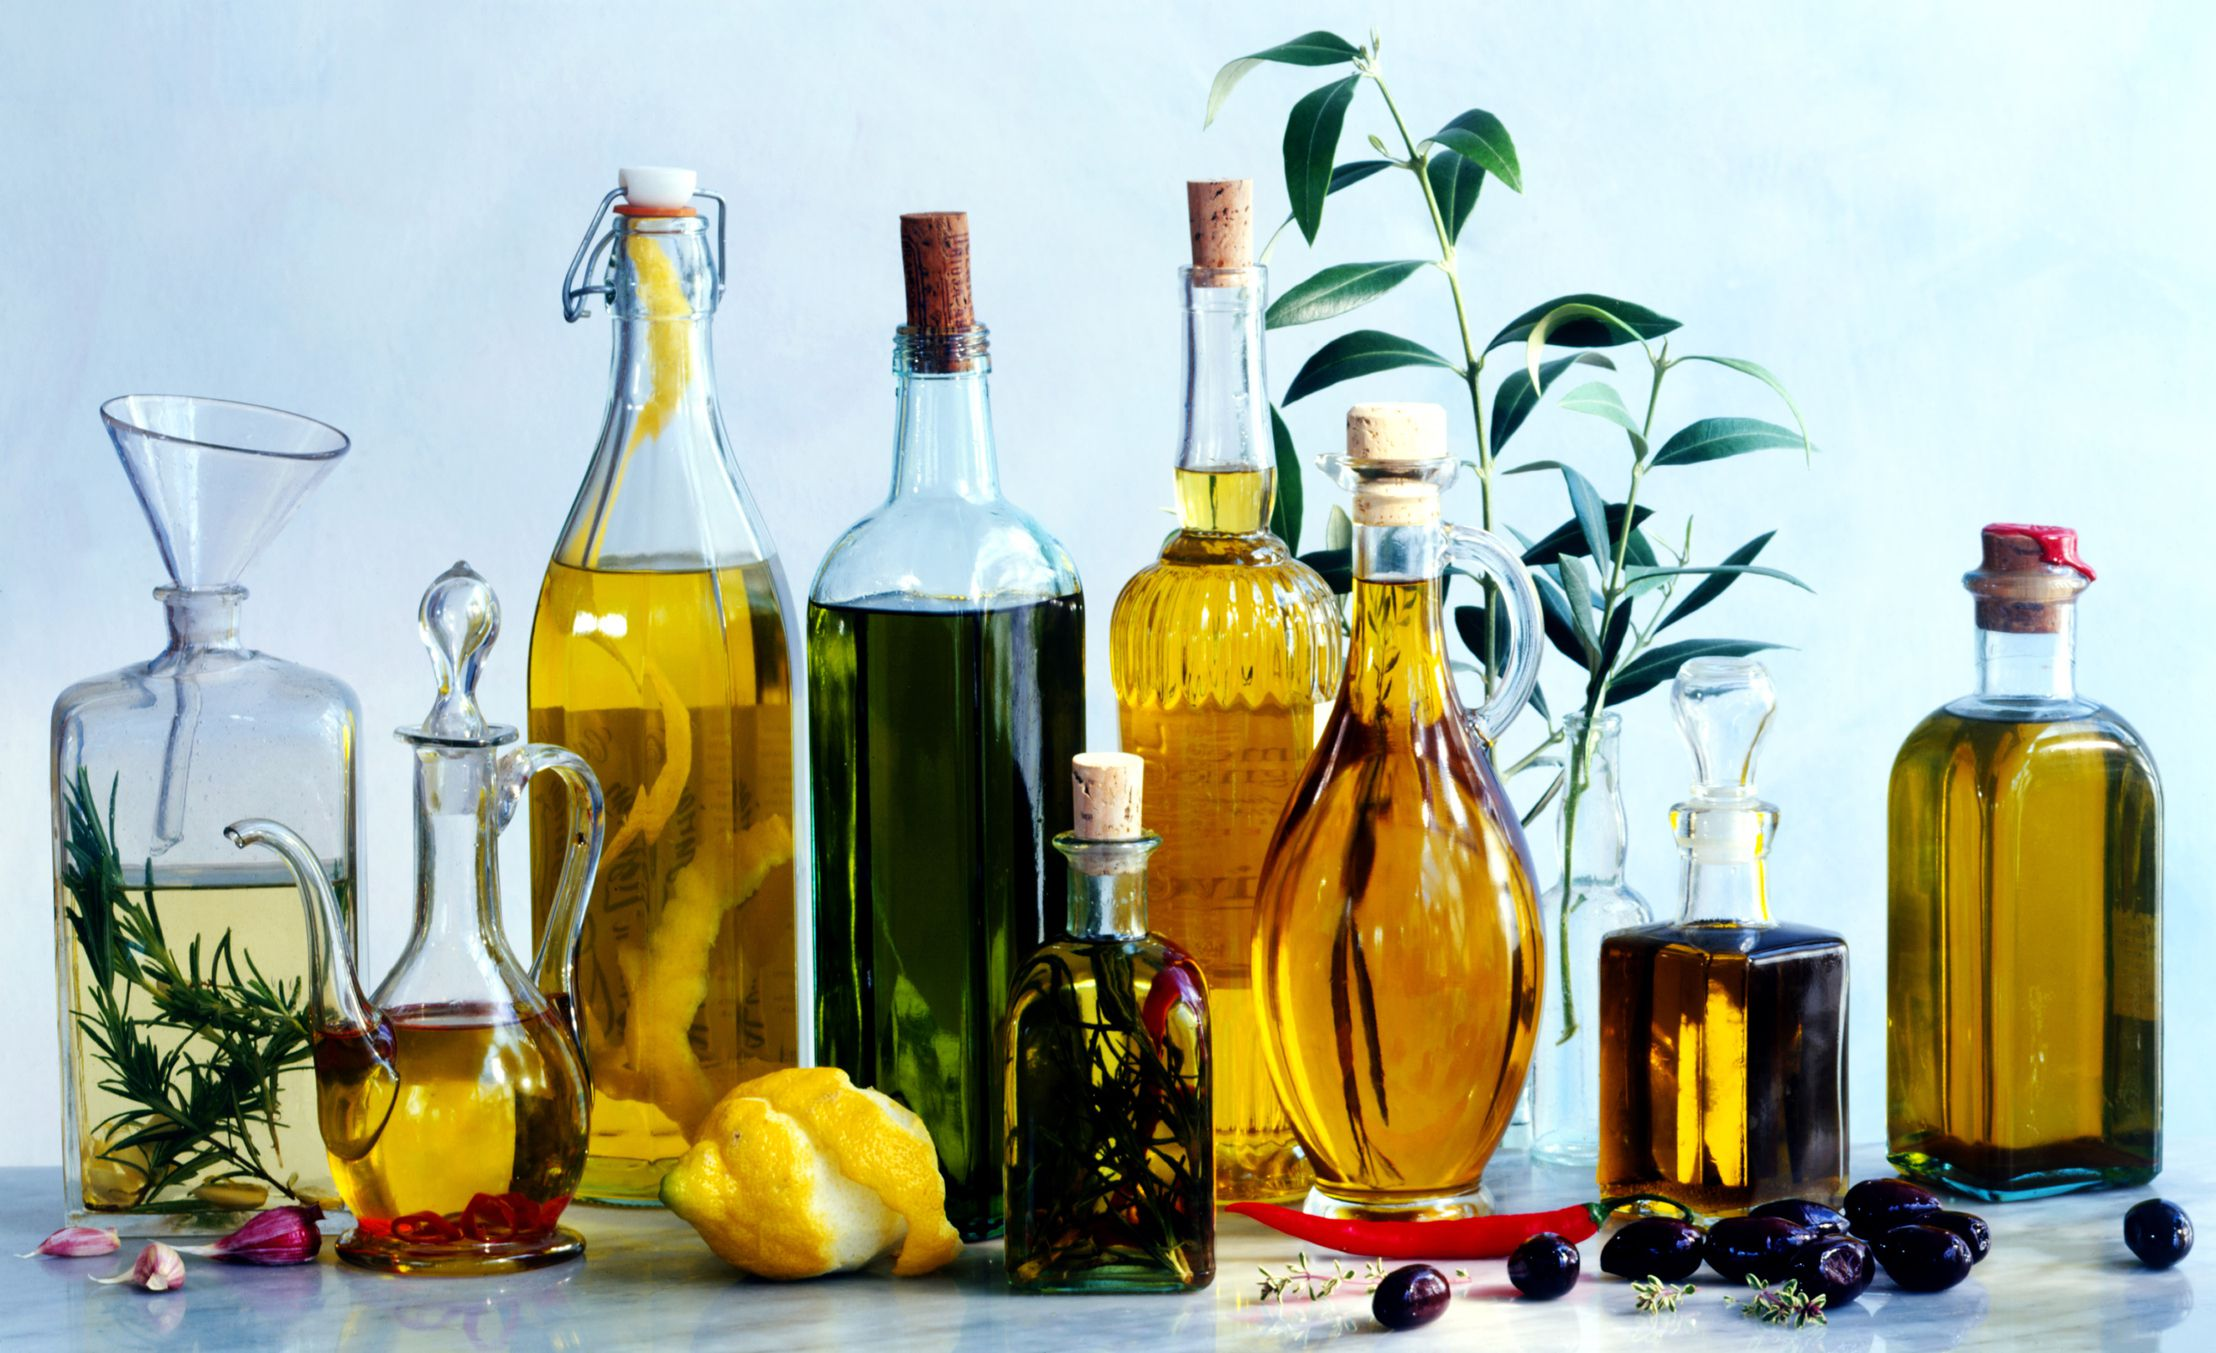 How to Make Homemade Herbal Oils for Cooking